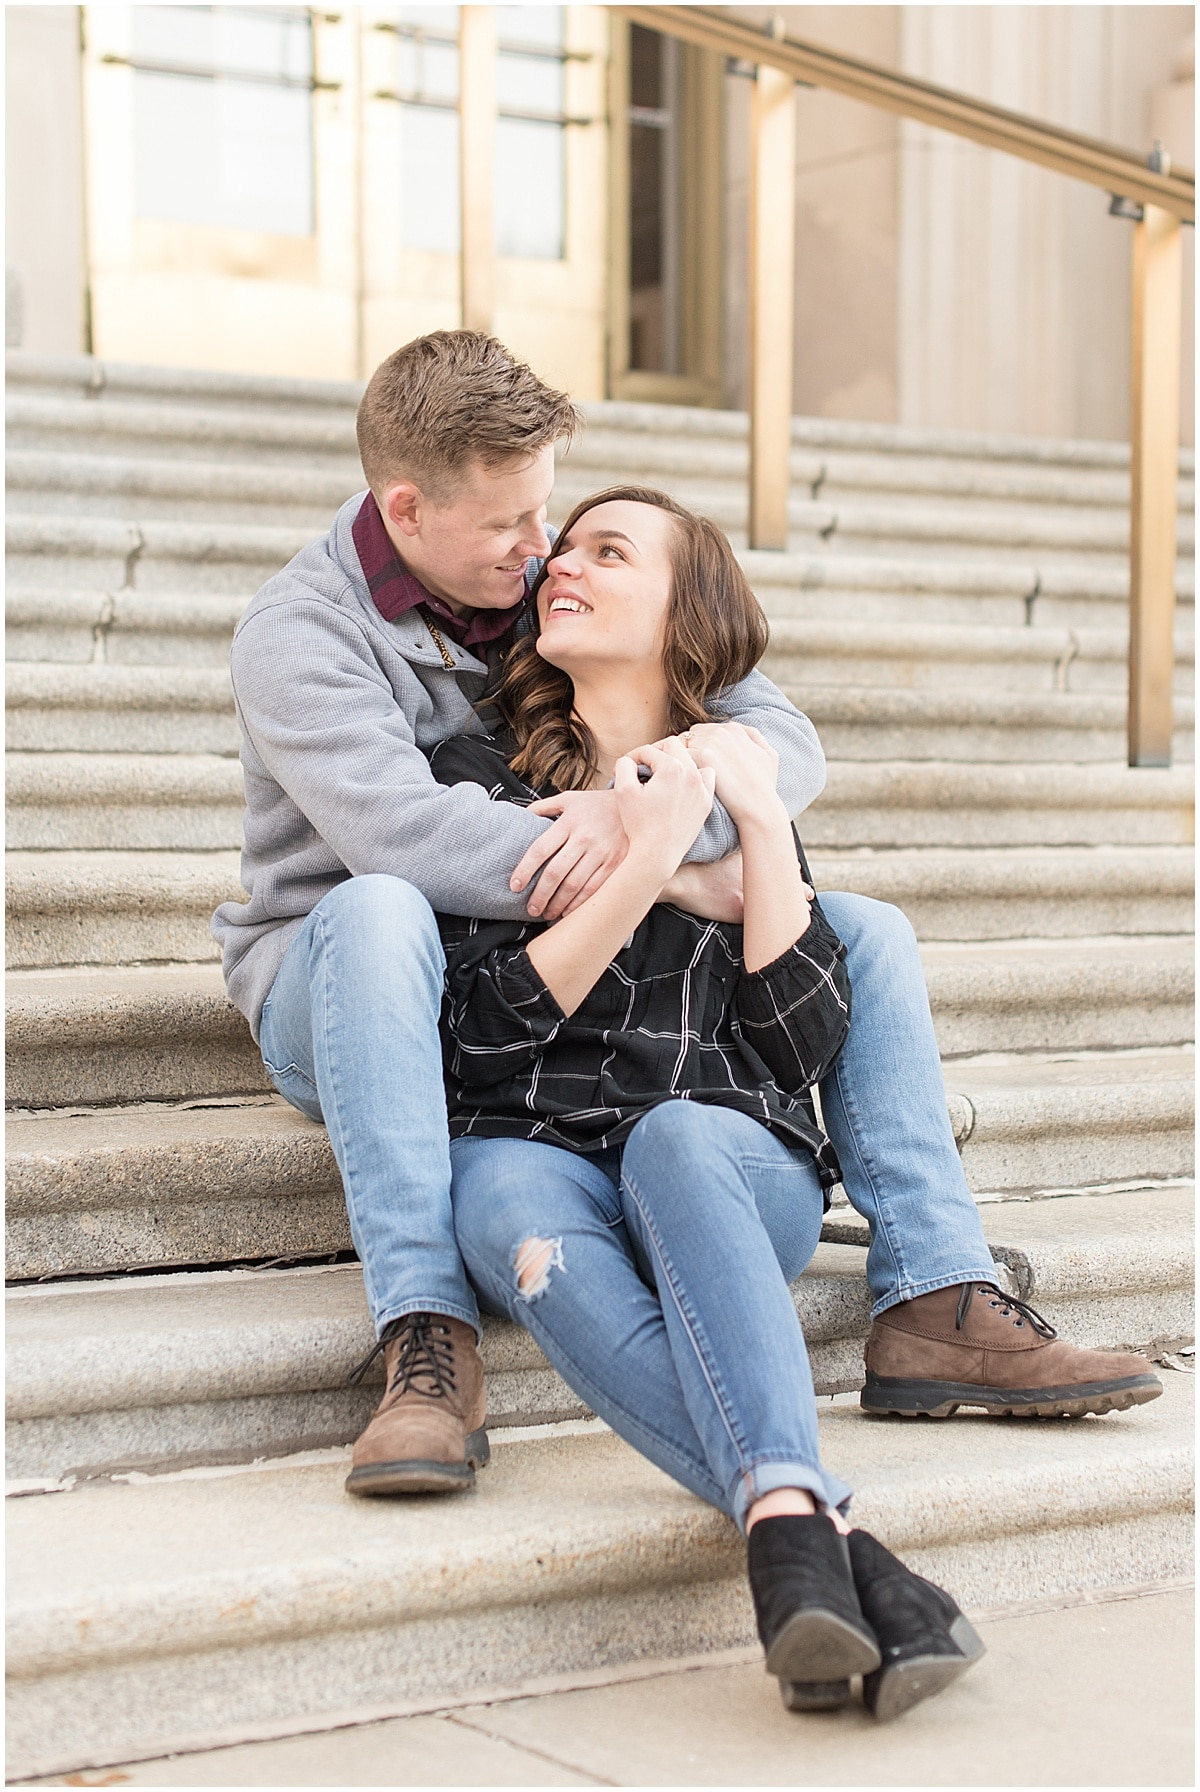 Winter Engagement Photos in Downtown Indianapolis 13.jpg